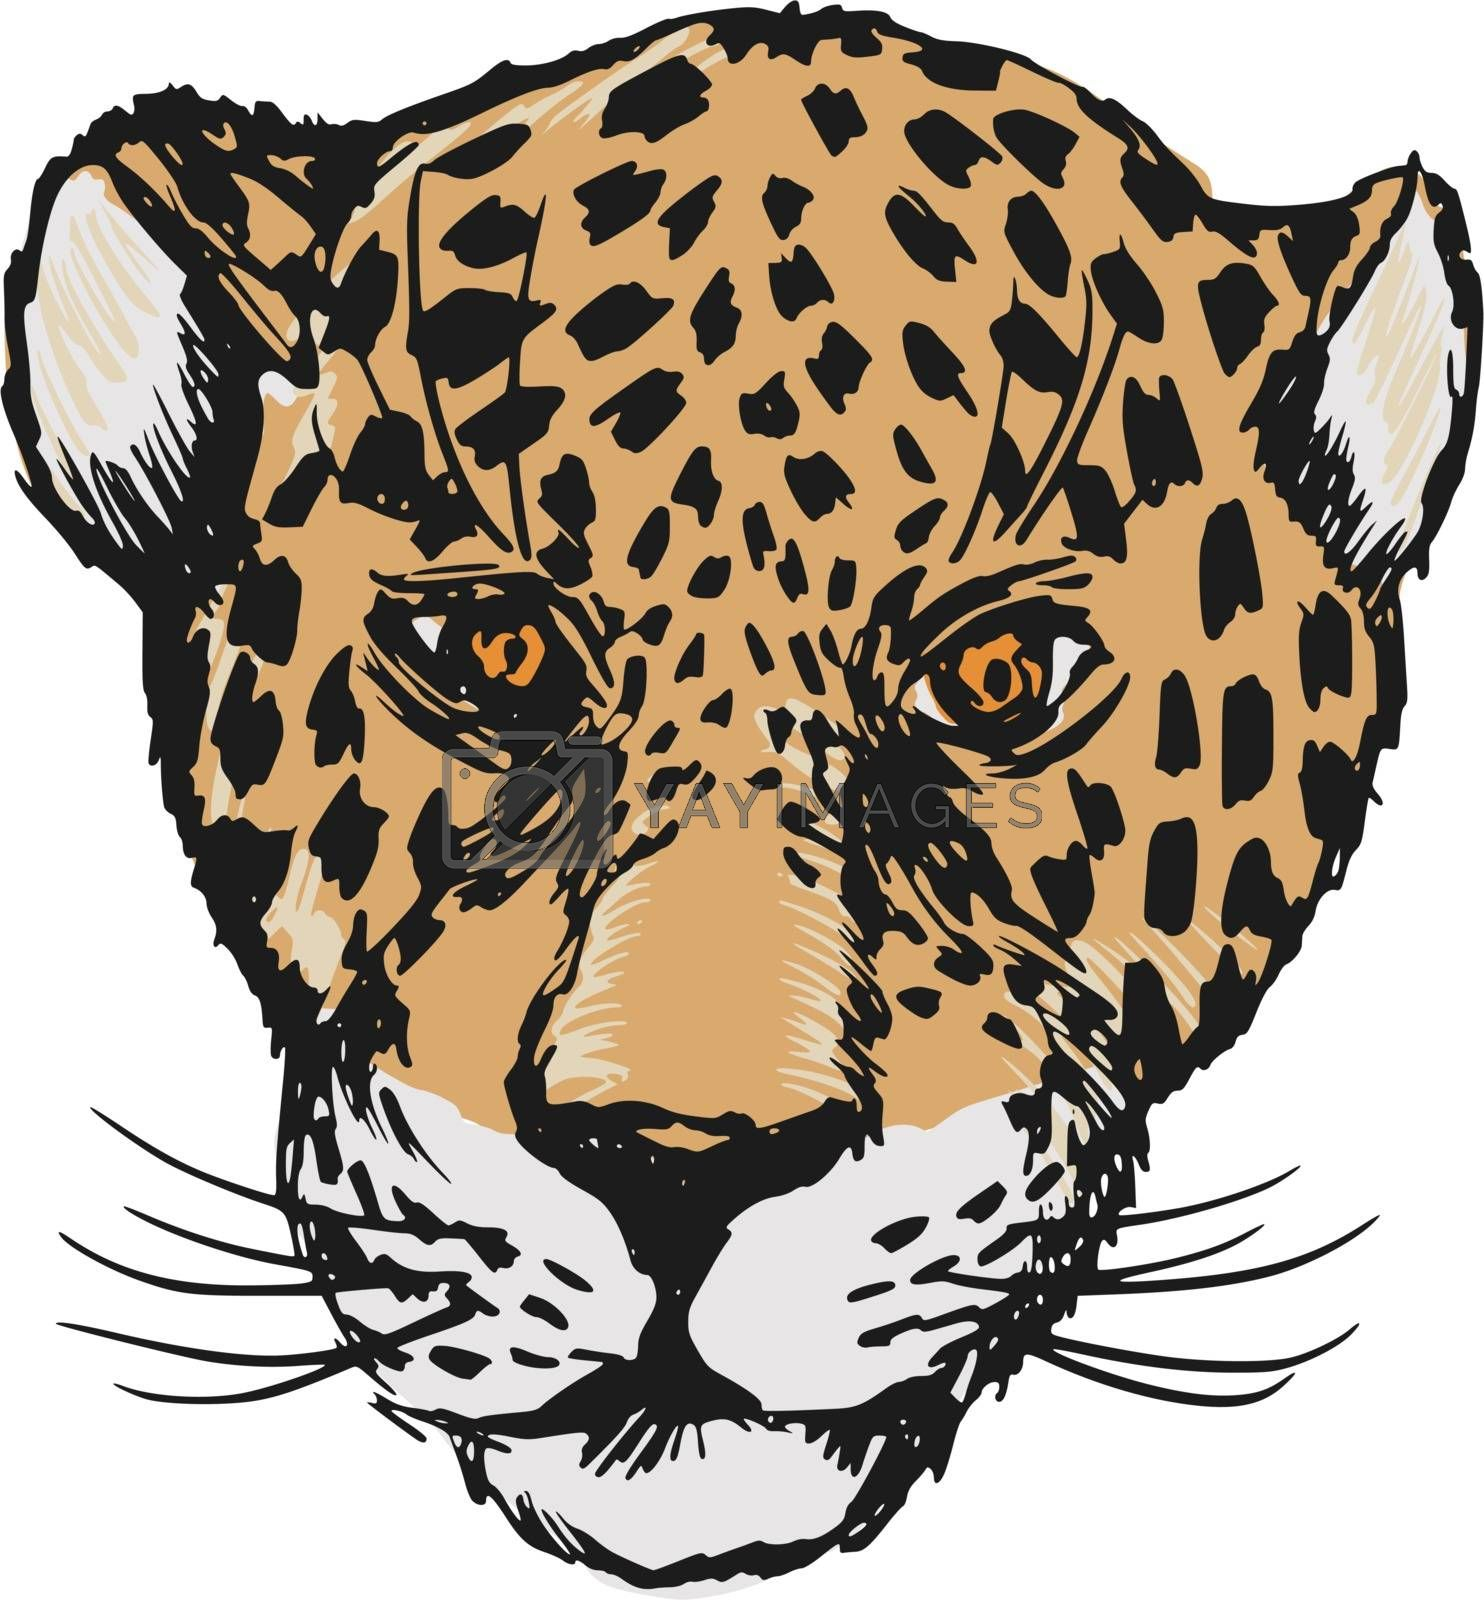 Royalty free image of jaguar by Perysty